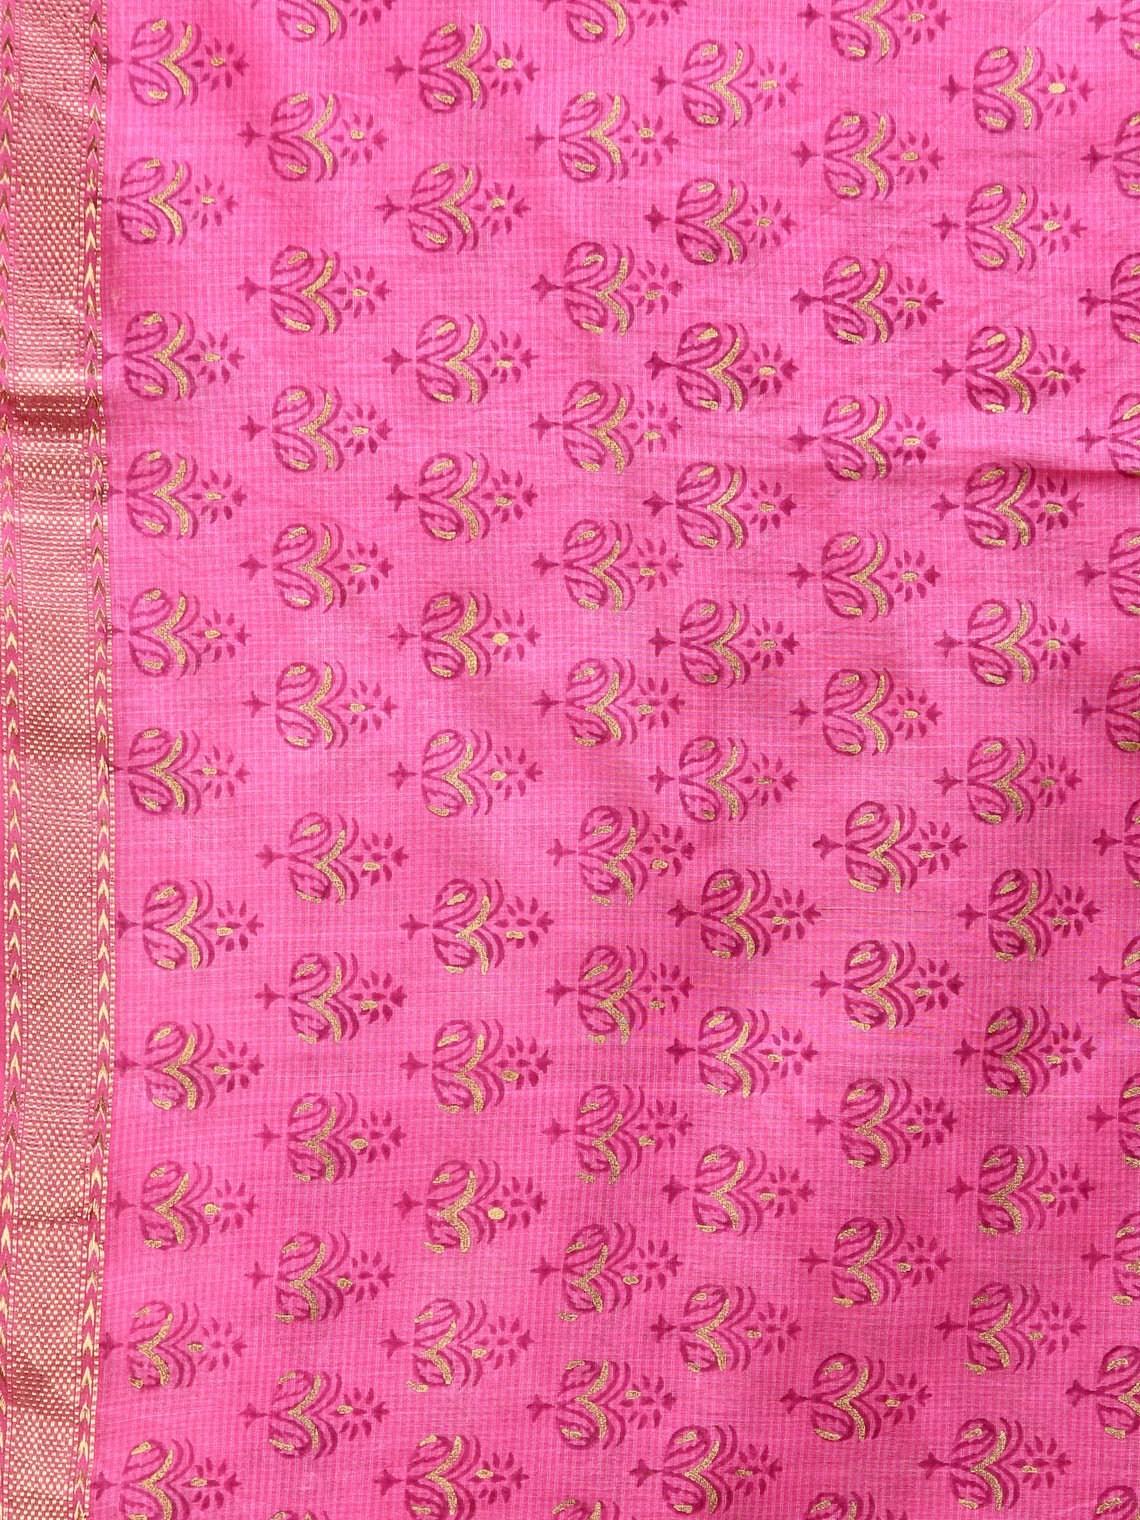 Pink Gold Print Cotton Hand Block Printed Dupatta - D04170724